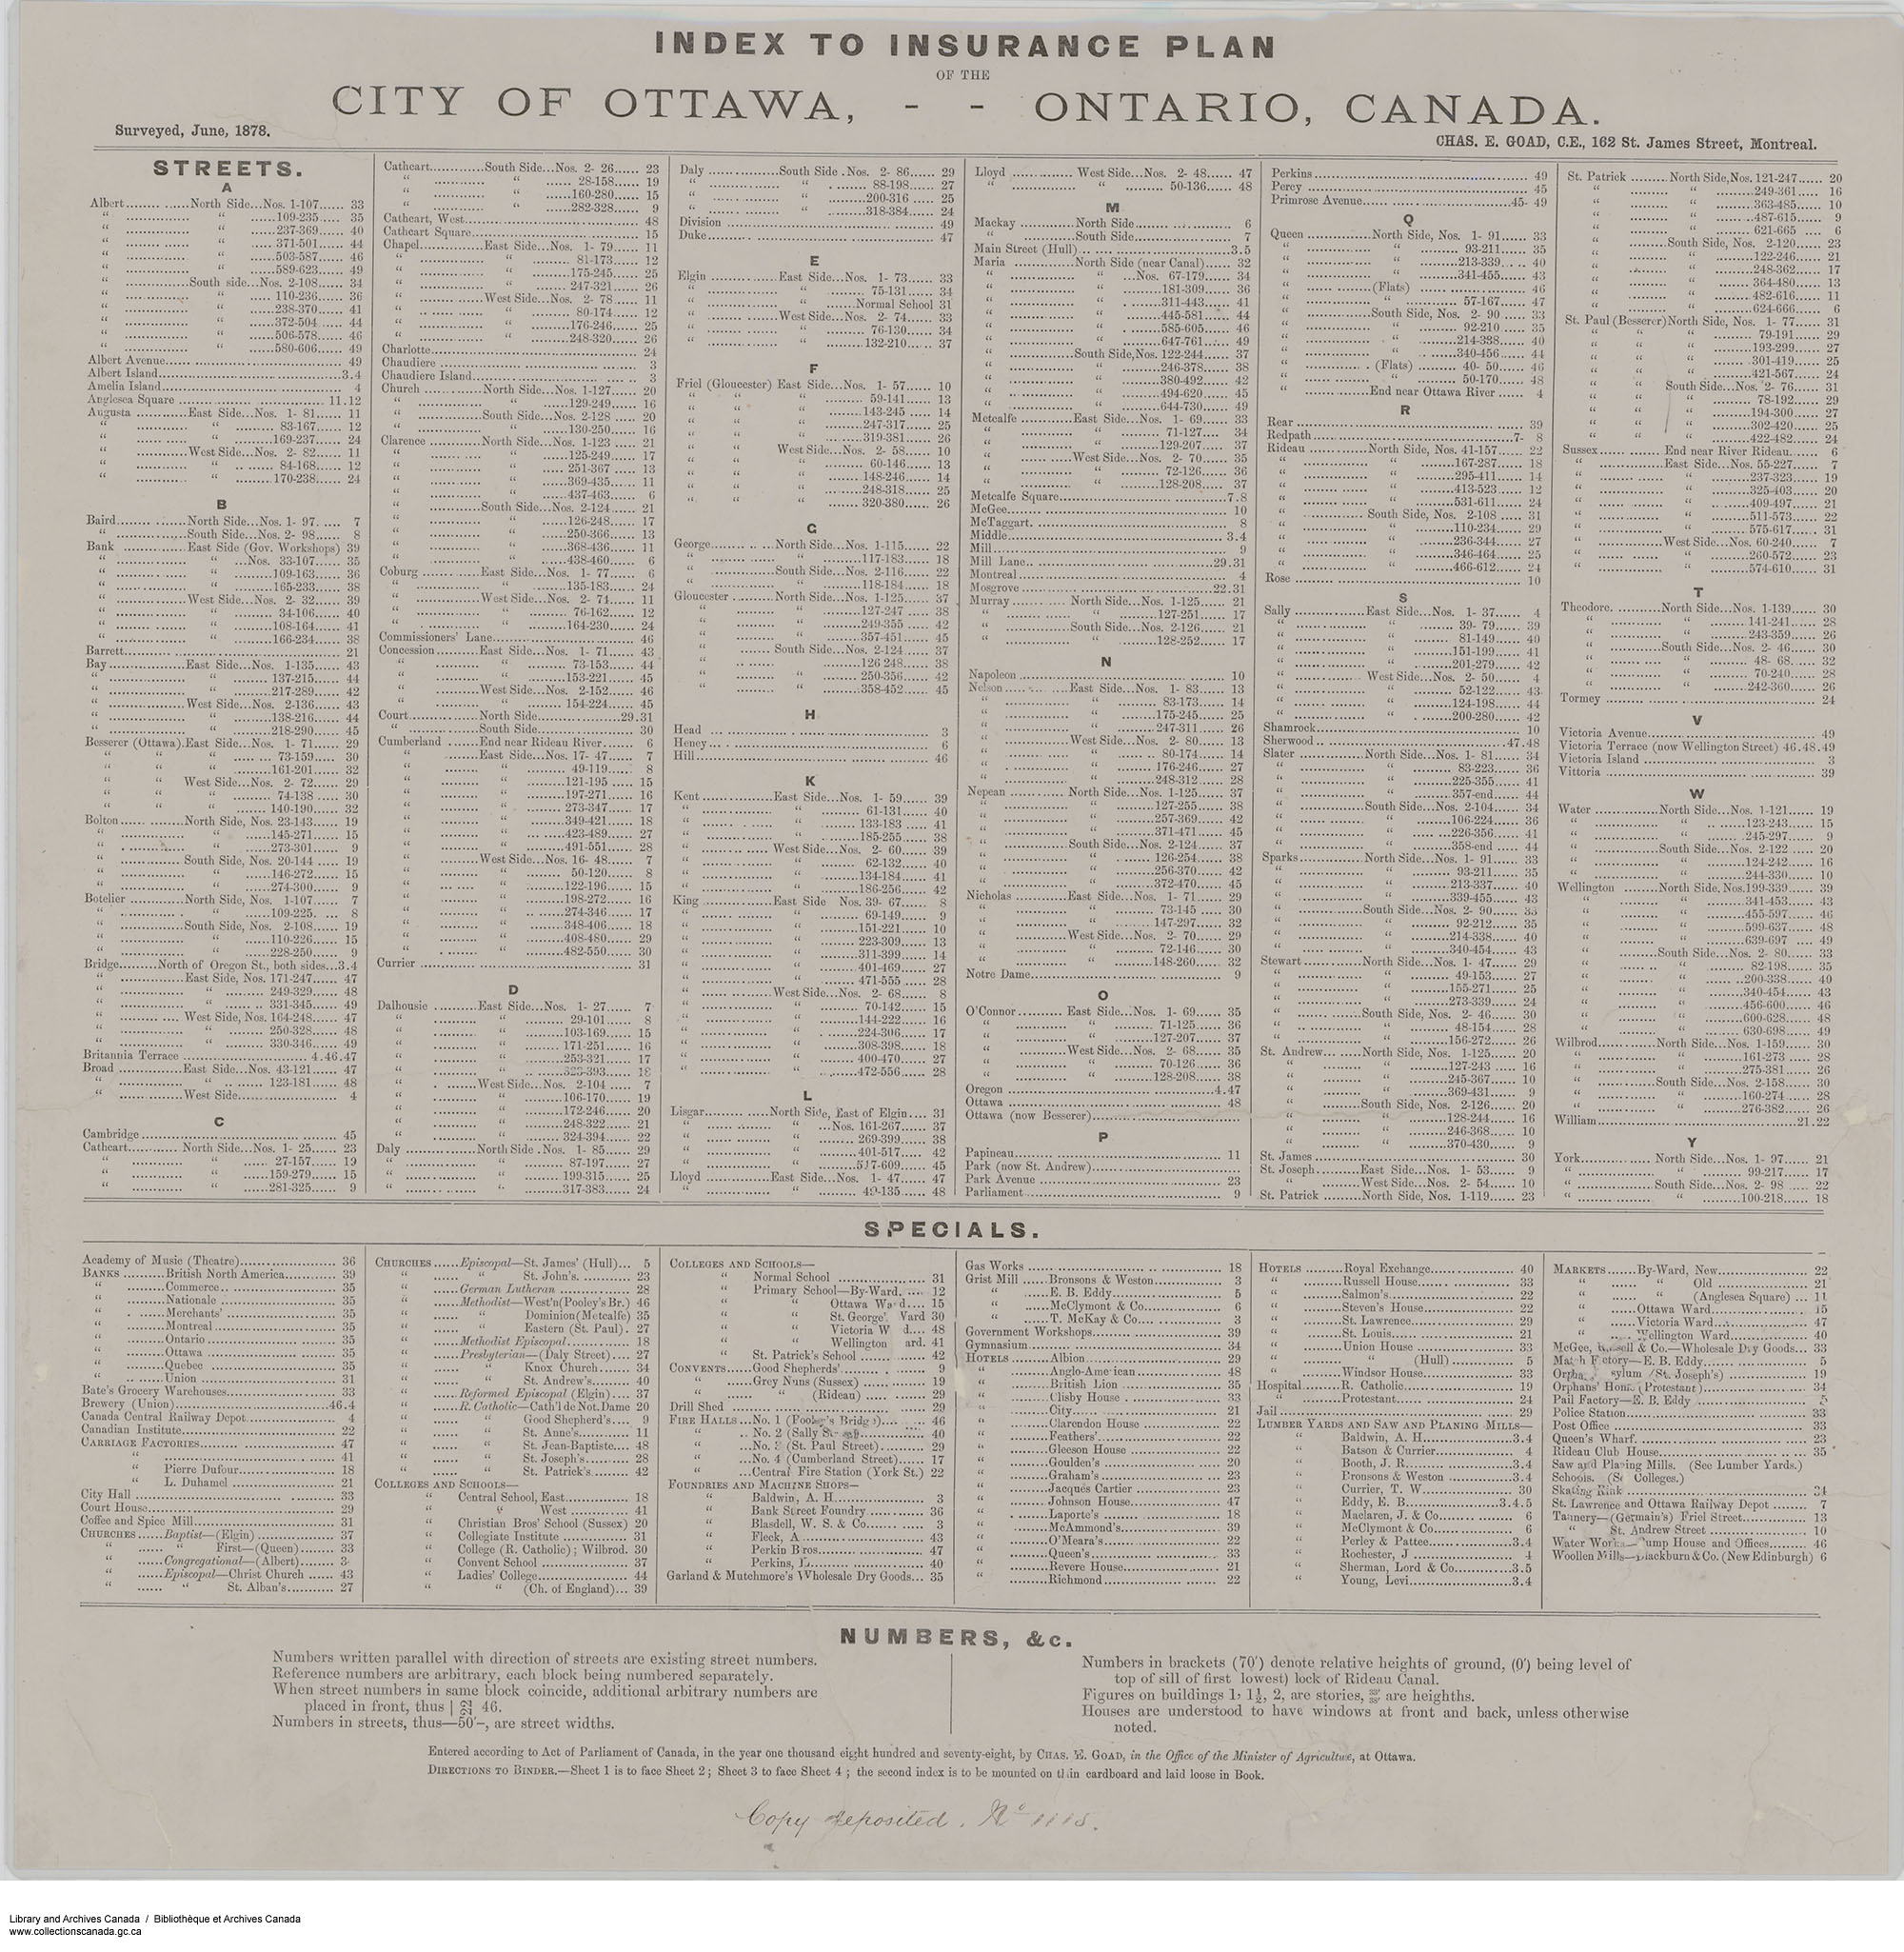 Insurance plan of Ottawa, Ontario, June 1878. (item 3)